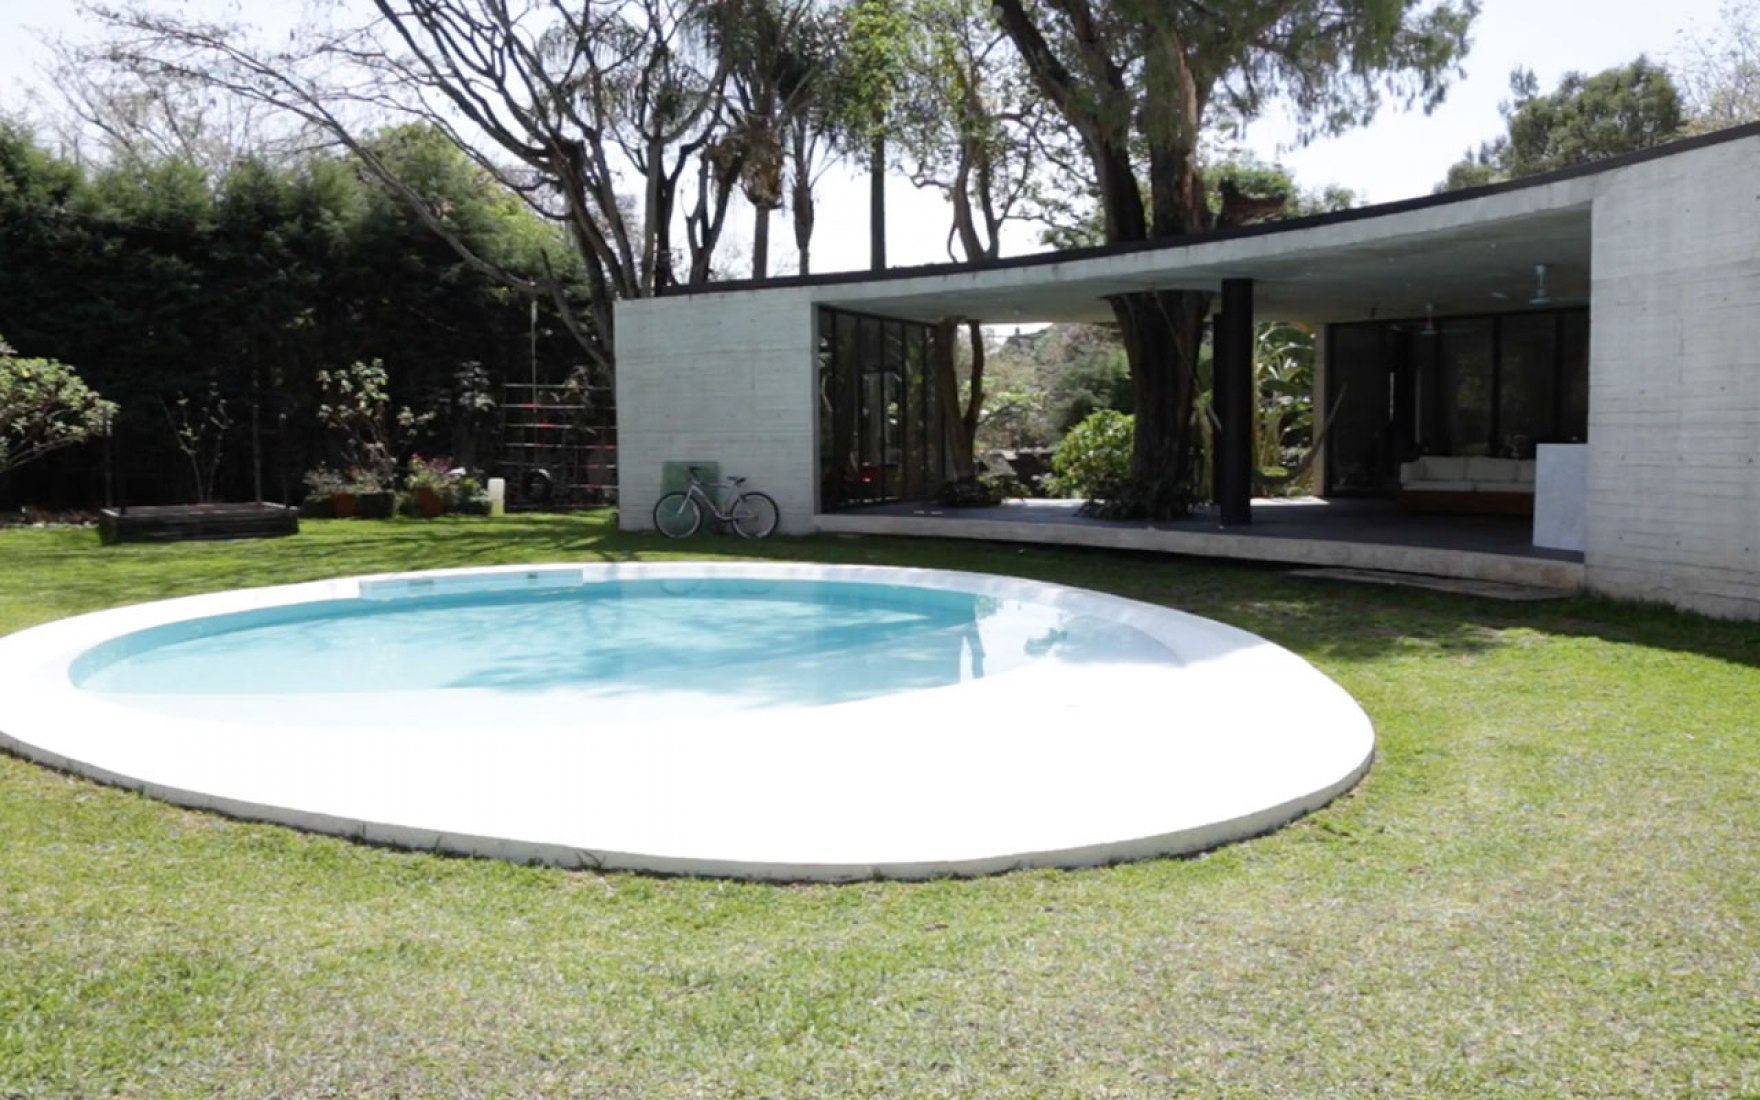 Still frame from Synthesis and Containment. Tepoztlan House by Cadaval & Solà-Morales.